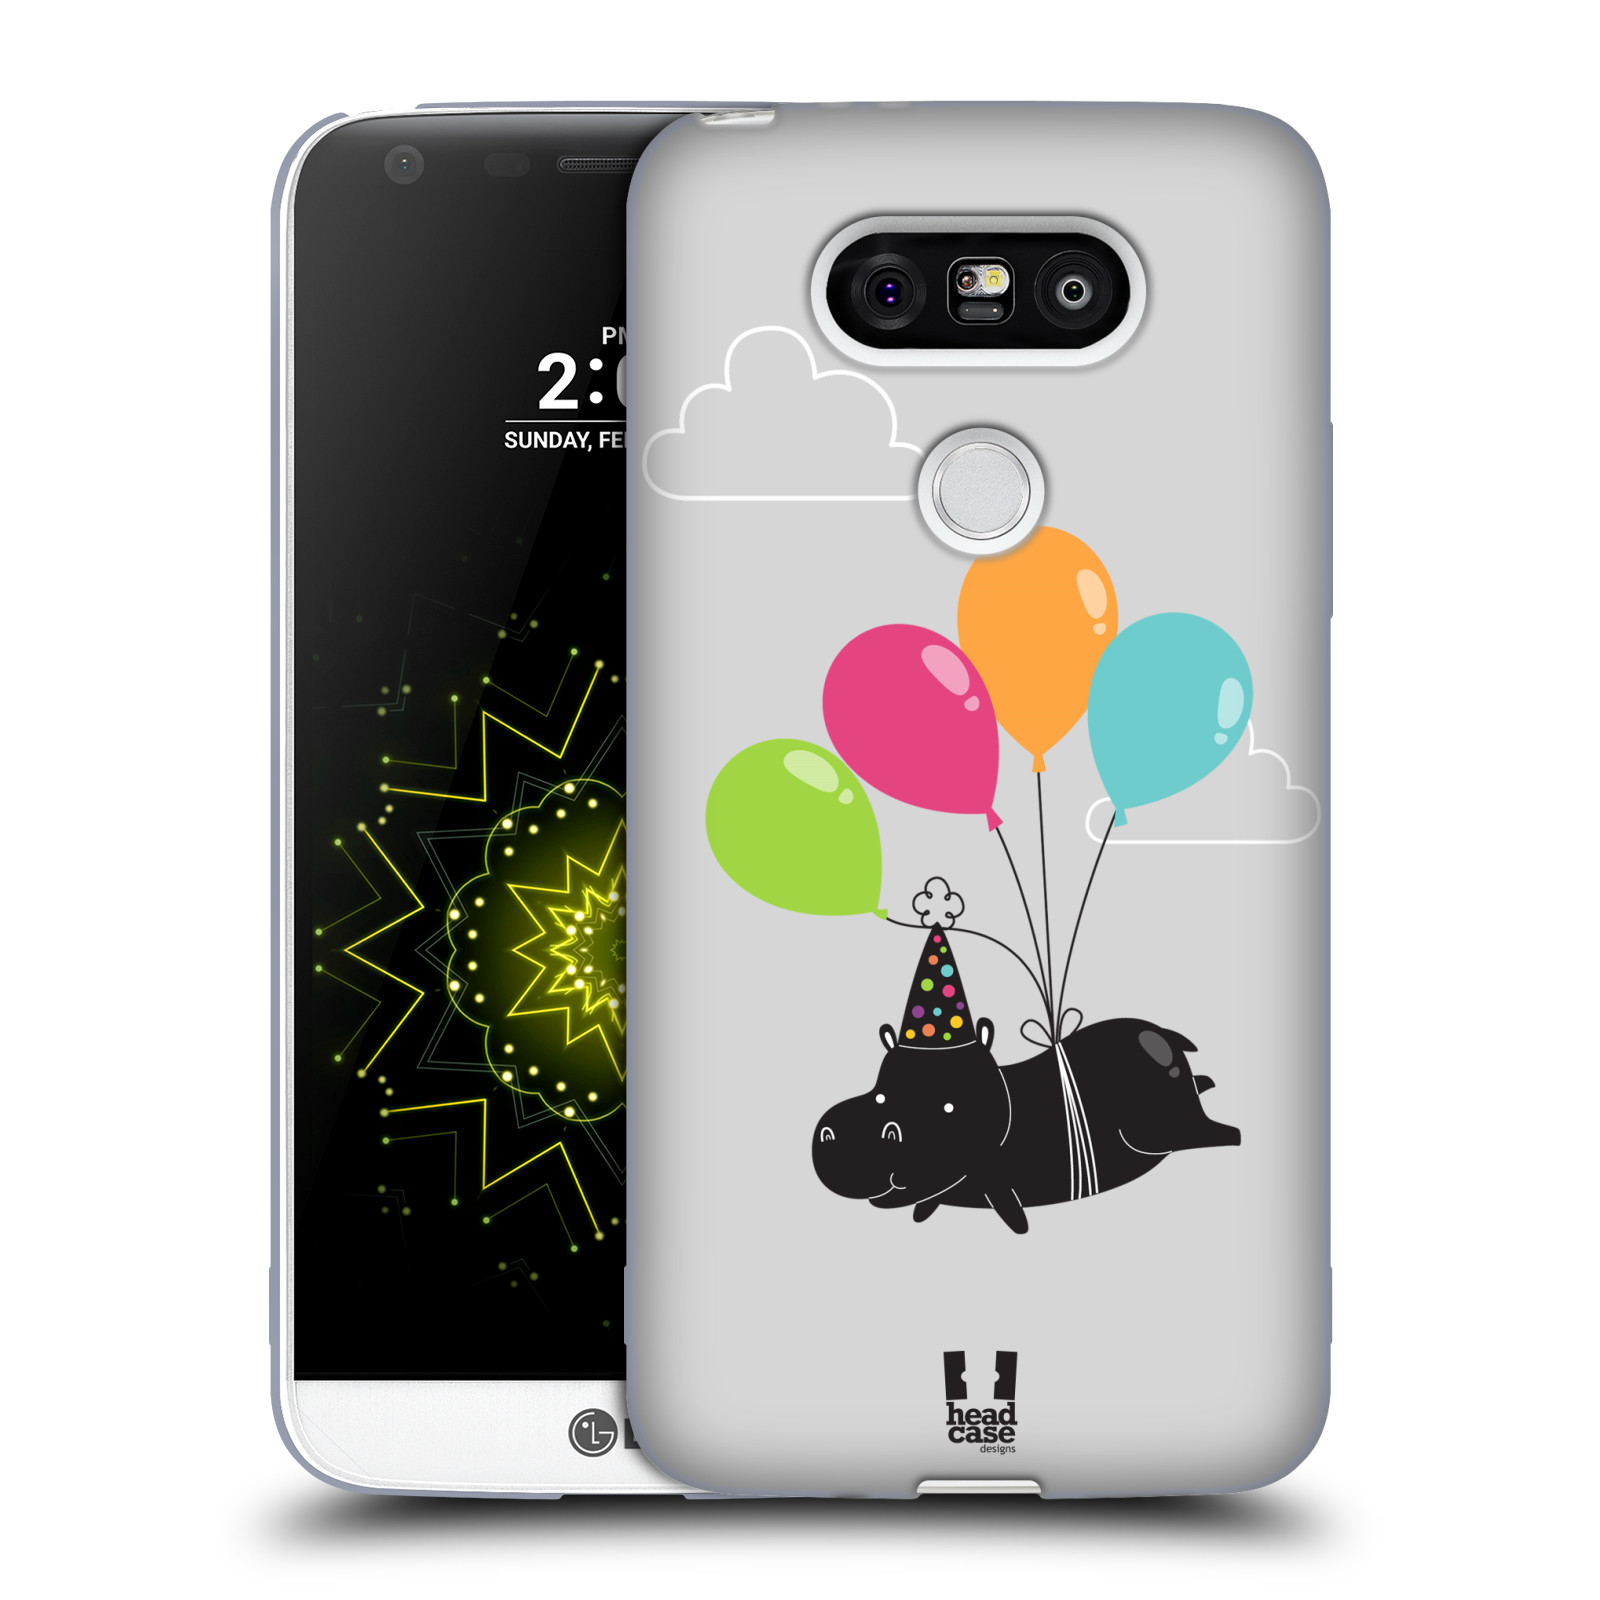 HEAD-CASE-DESIGNS-PARTY-ANIMALS-SOFT-GEL-CASE-FOR-LG-G5-H850-H840